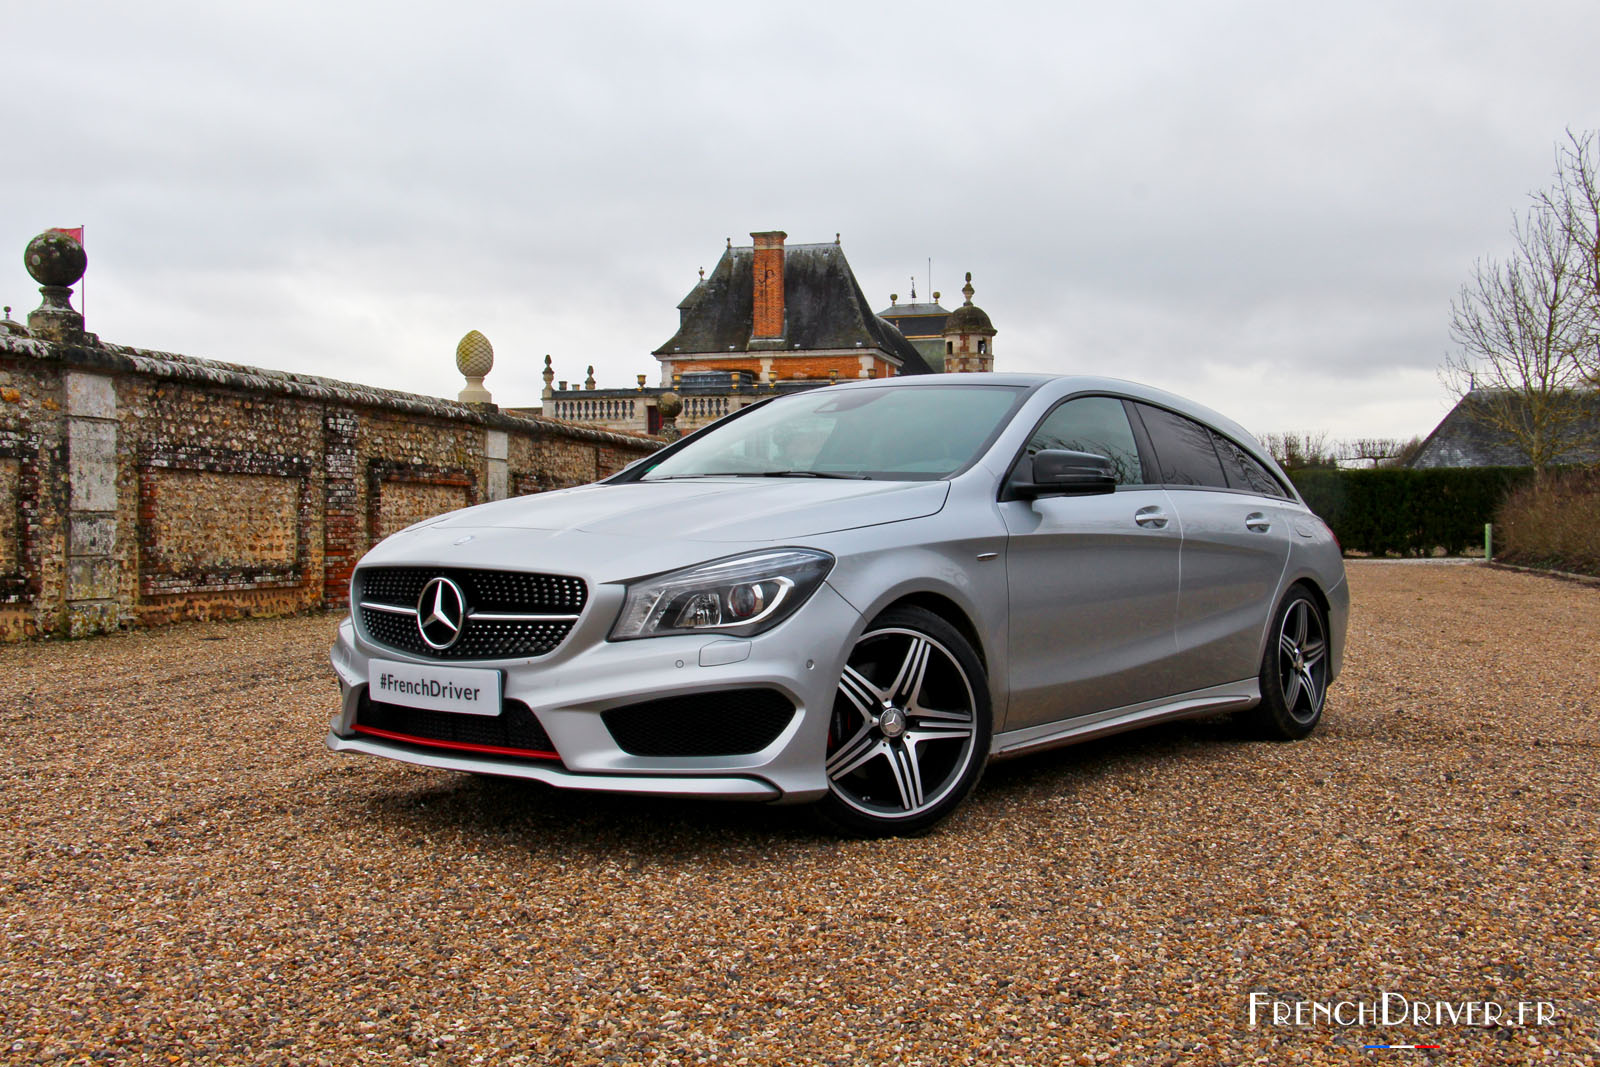 essai de la mercedes cla shooting brake l 39 alliance de deux philosophies antinomiques french. Black Bedroom Furniture Sets. Home Design Ideas